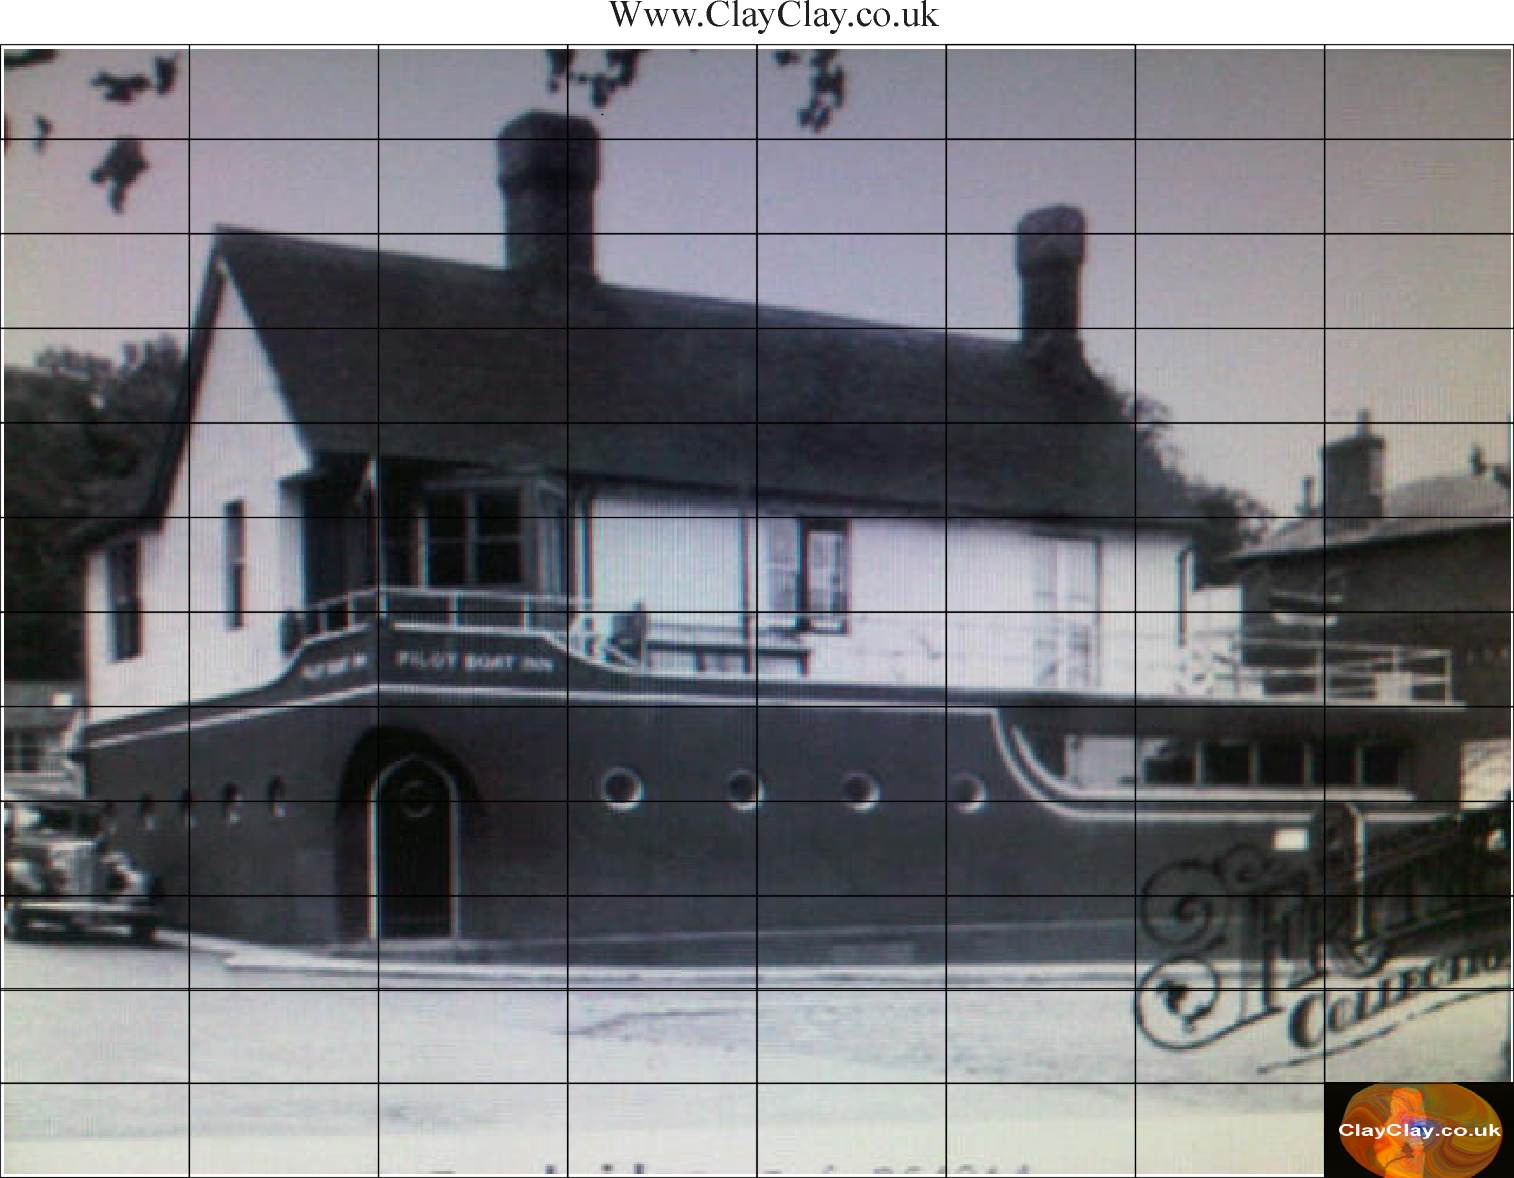 Mini Brick Jigsaws Pilot Boat Inn 96 pieces £24 (Non Magnetic)